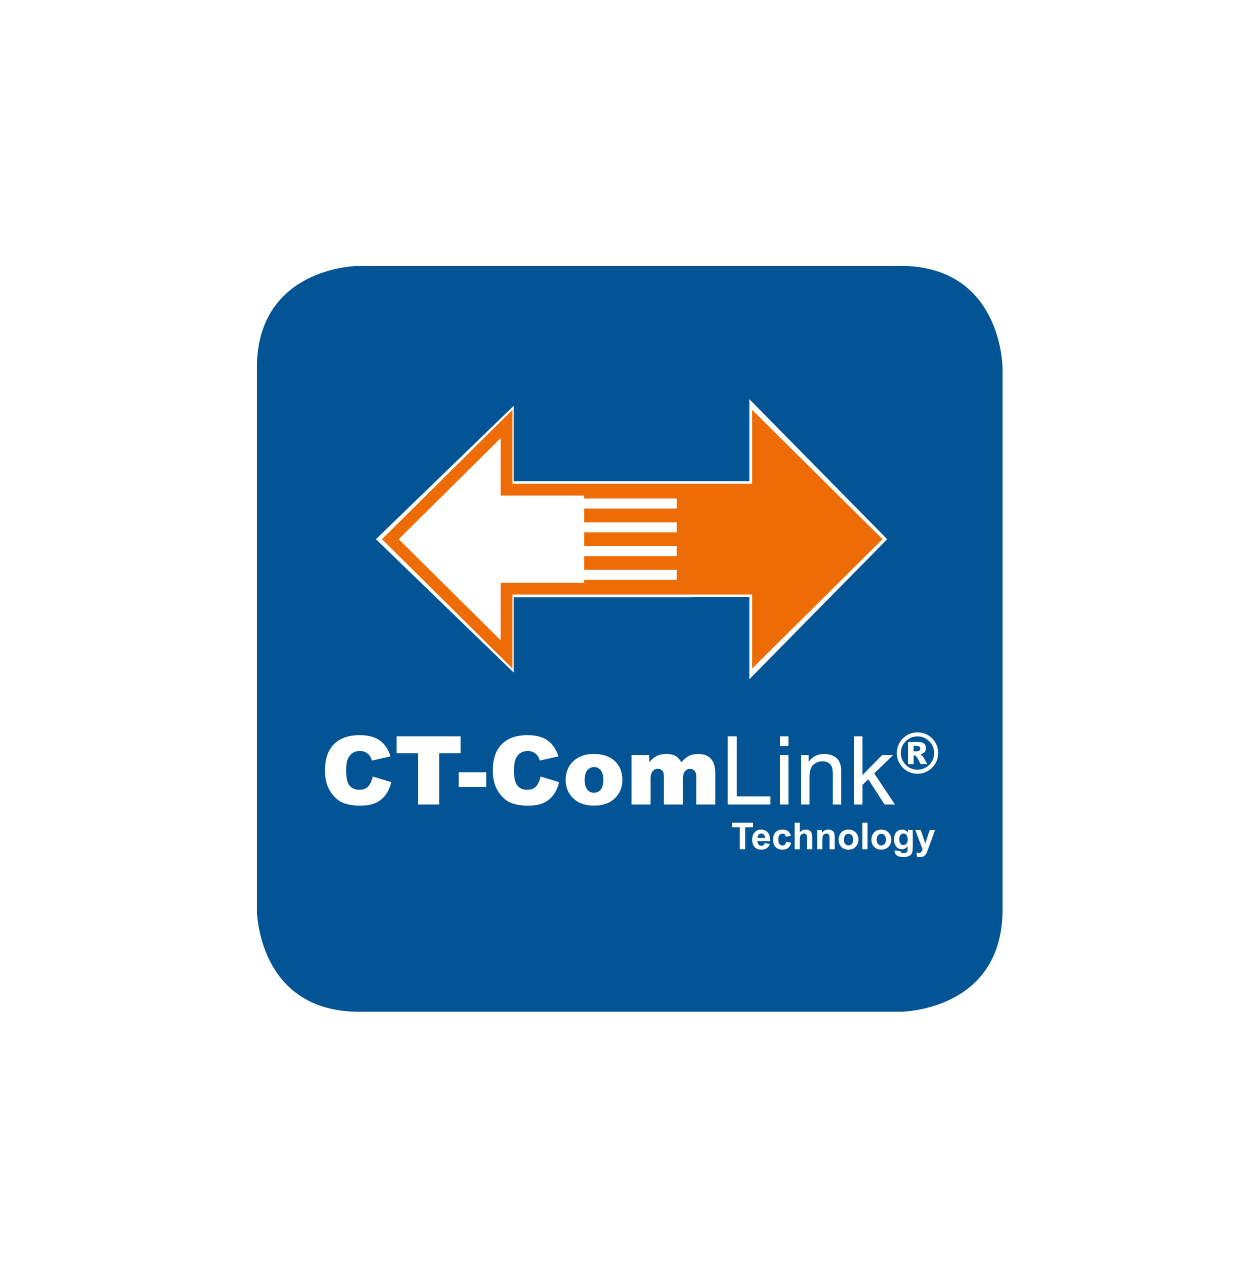 CT-ComLink® Technology